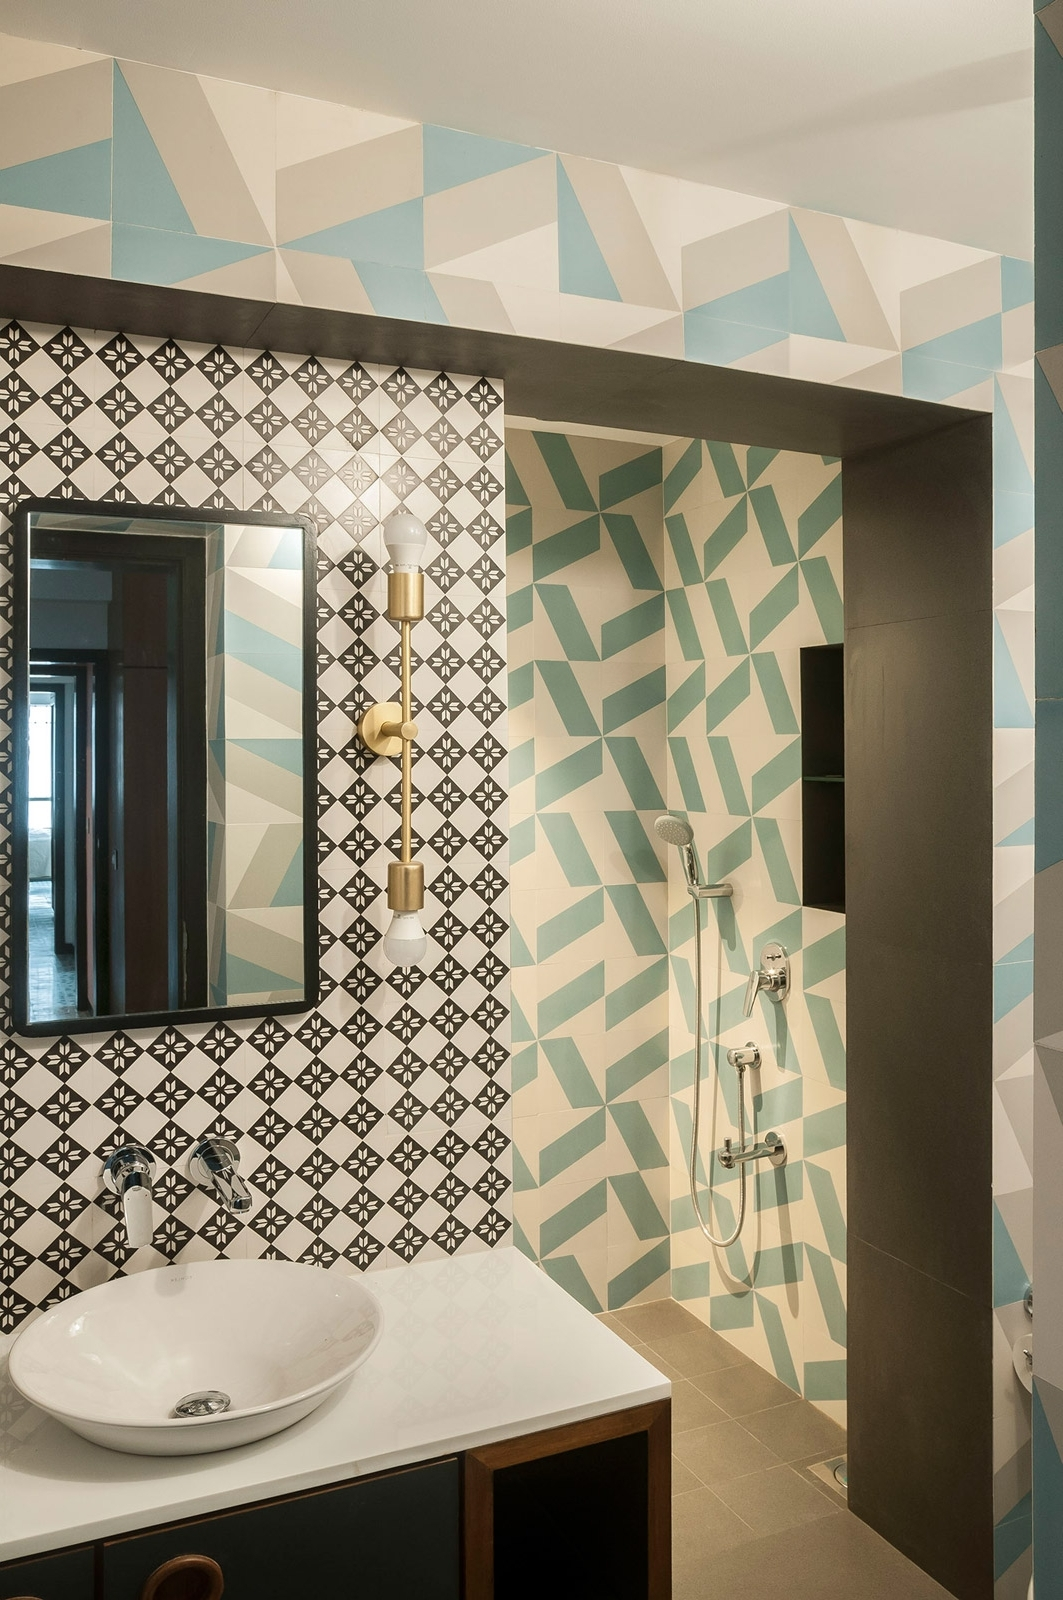 Bathroom Tiles: How To Make A Statement | Beautiful Homes Bathroom Highlighter